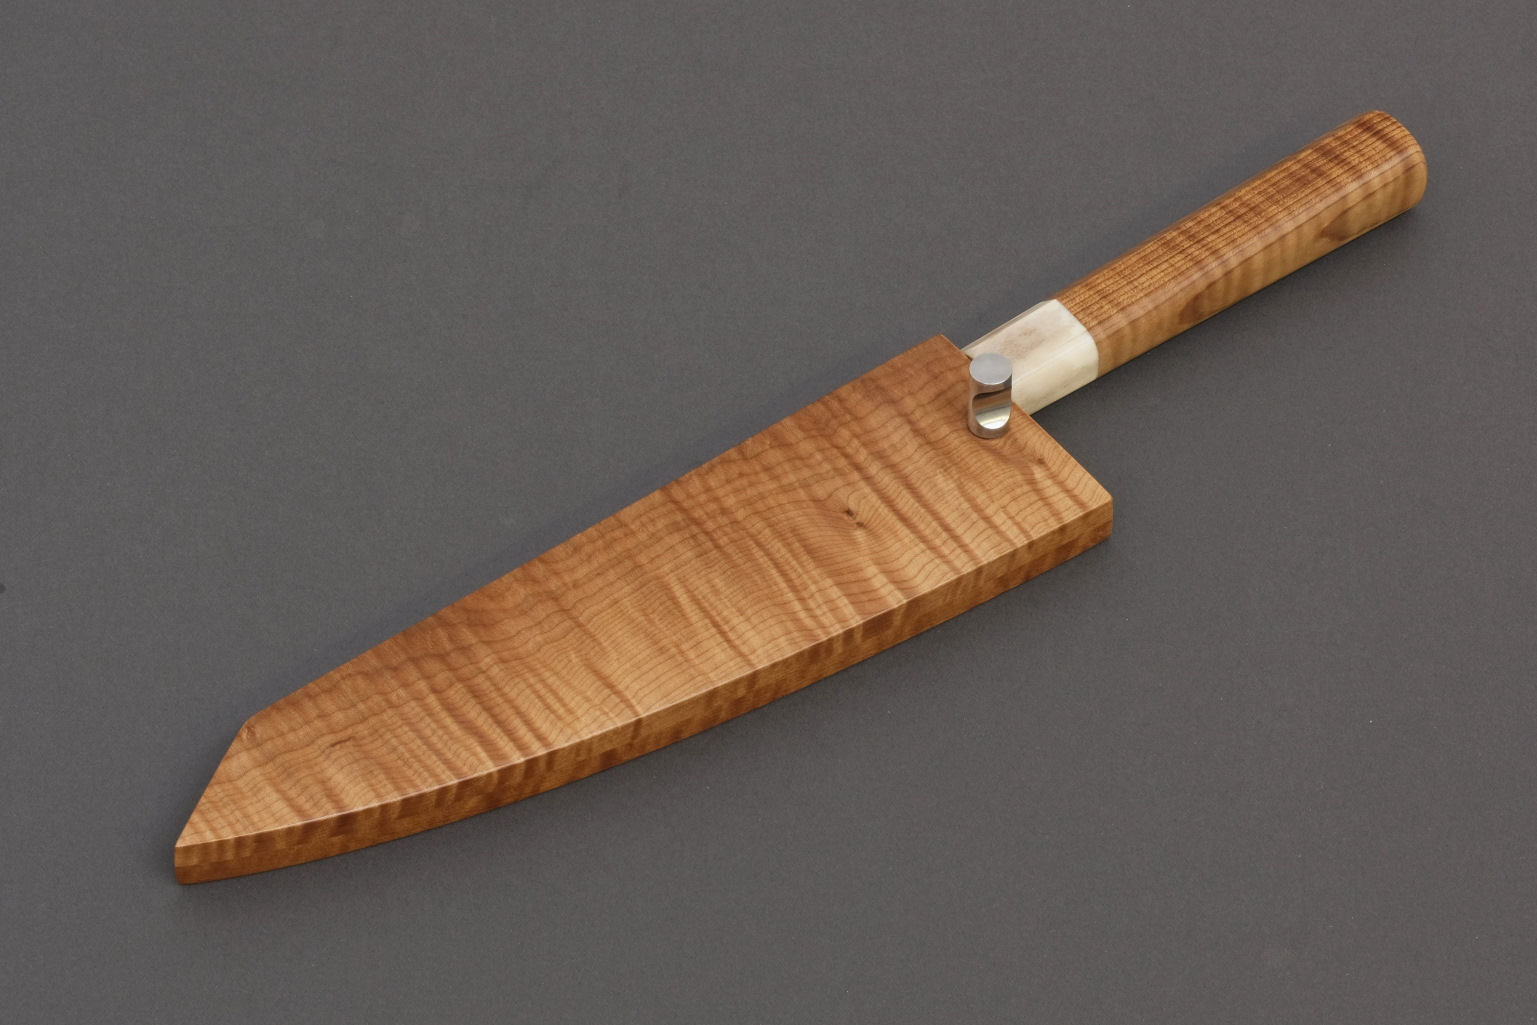 Nakama knife from Guldimann with a handle and sheath from Bijouwood flamed maple